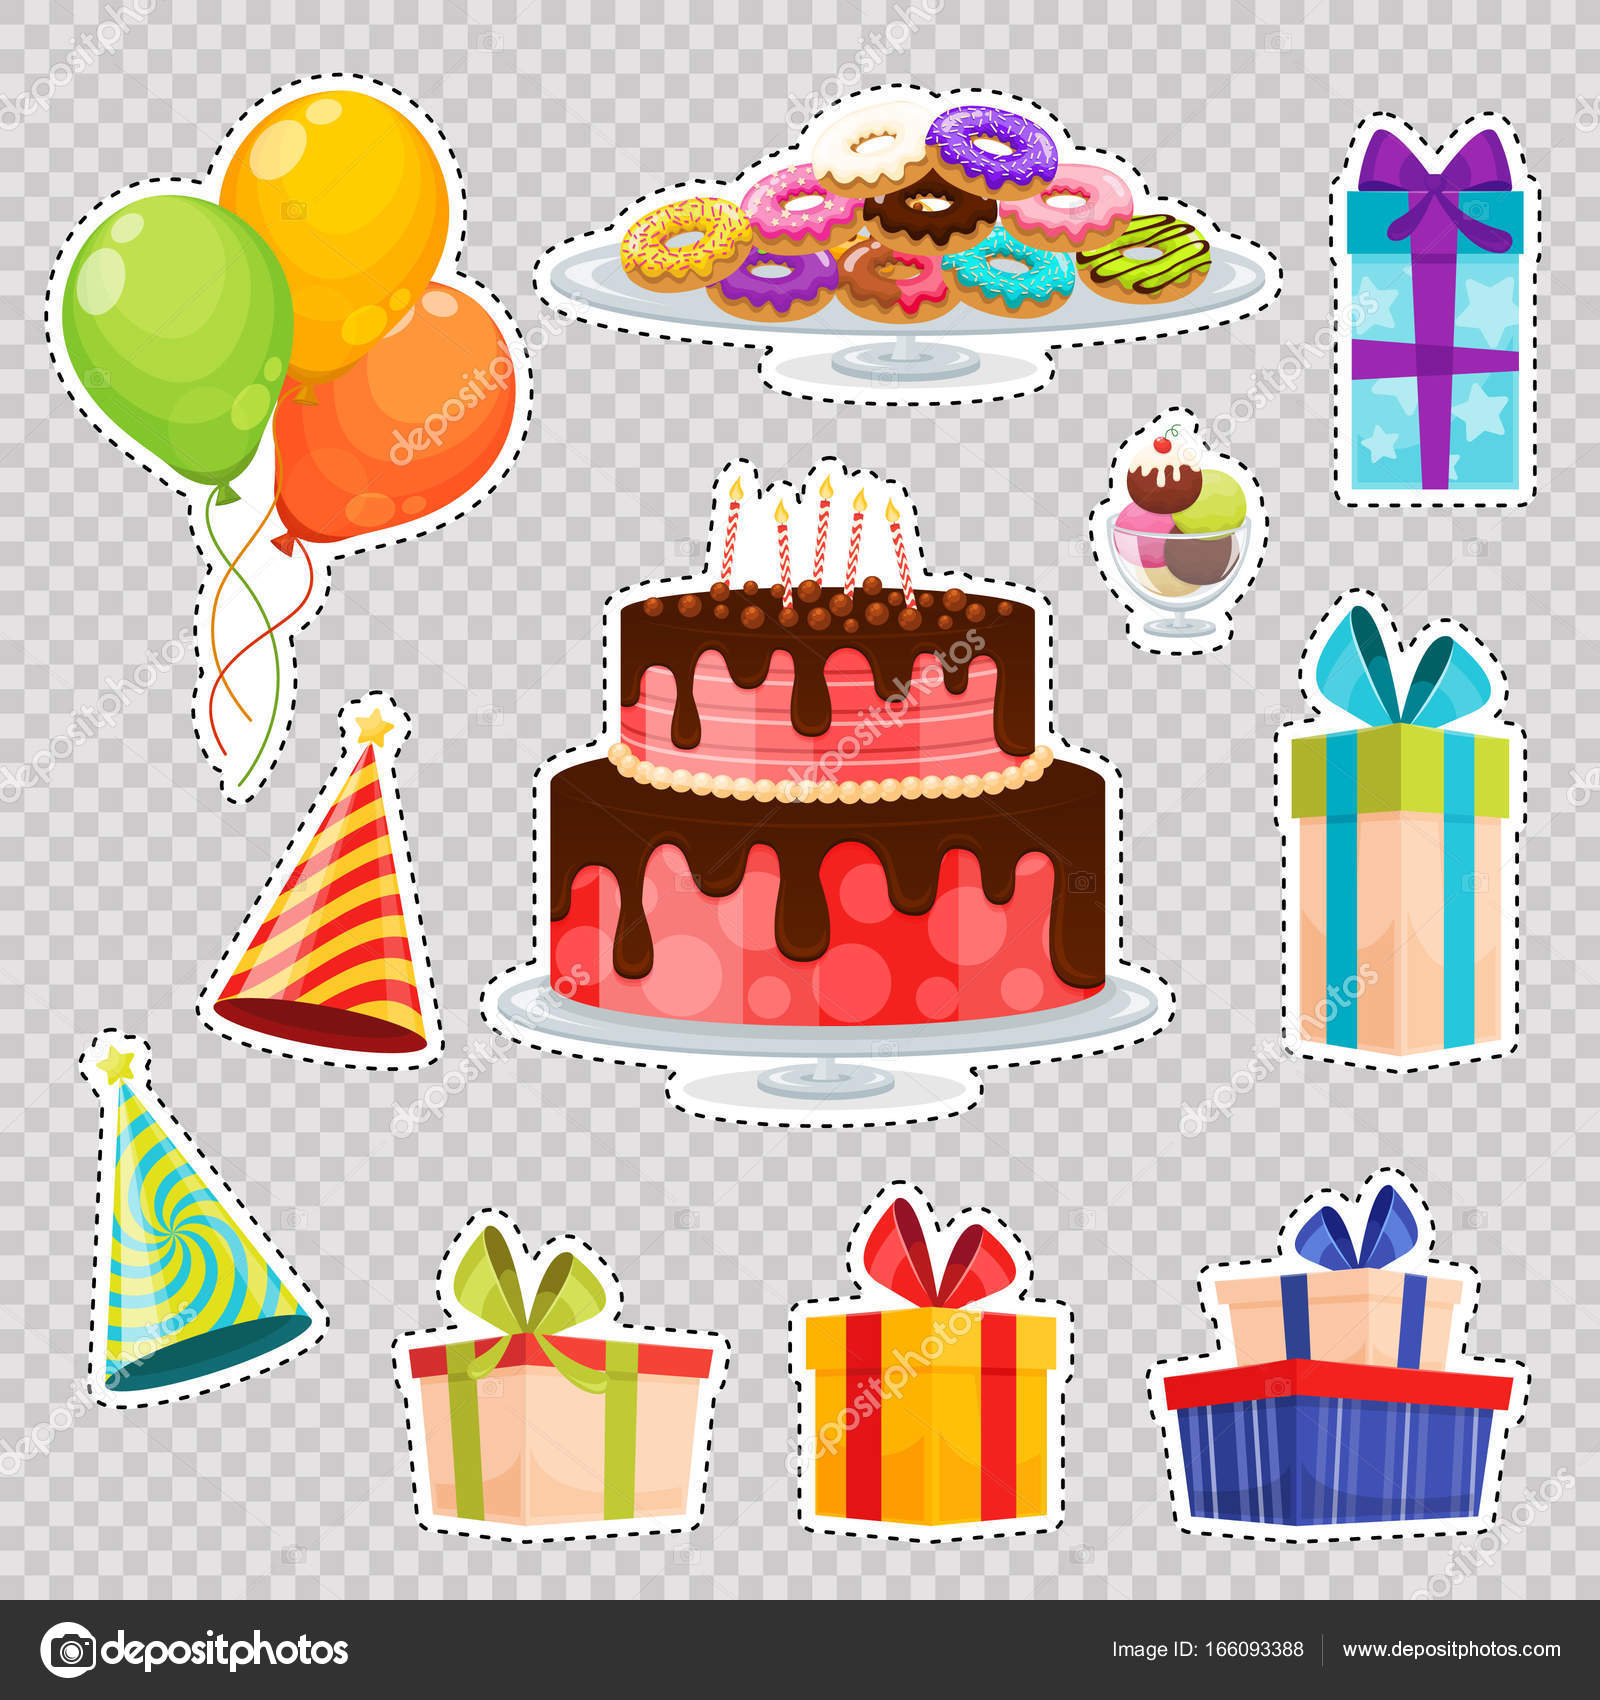 Tremendous Patch Badges Birthday Cake Balloons Gift Box Hats Ice Cream Funny Birthday Cards Online Sheoxdamsfinfo